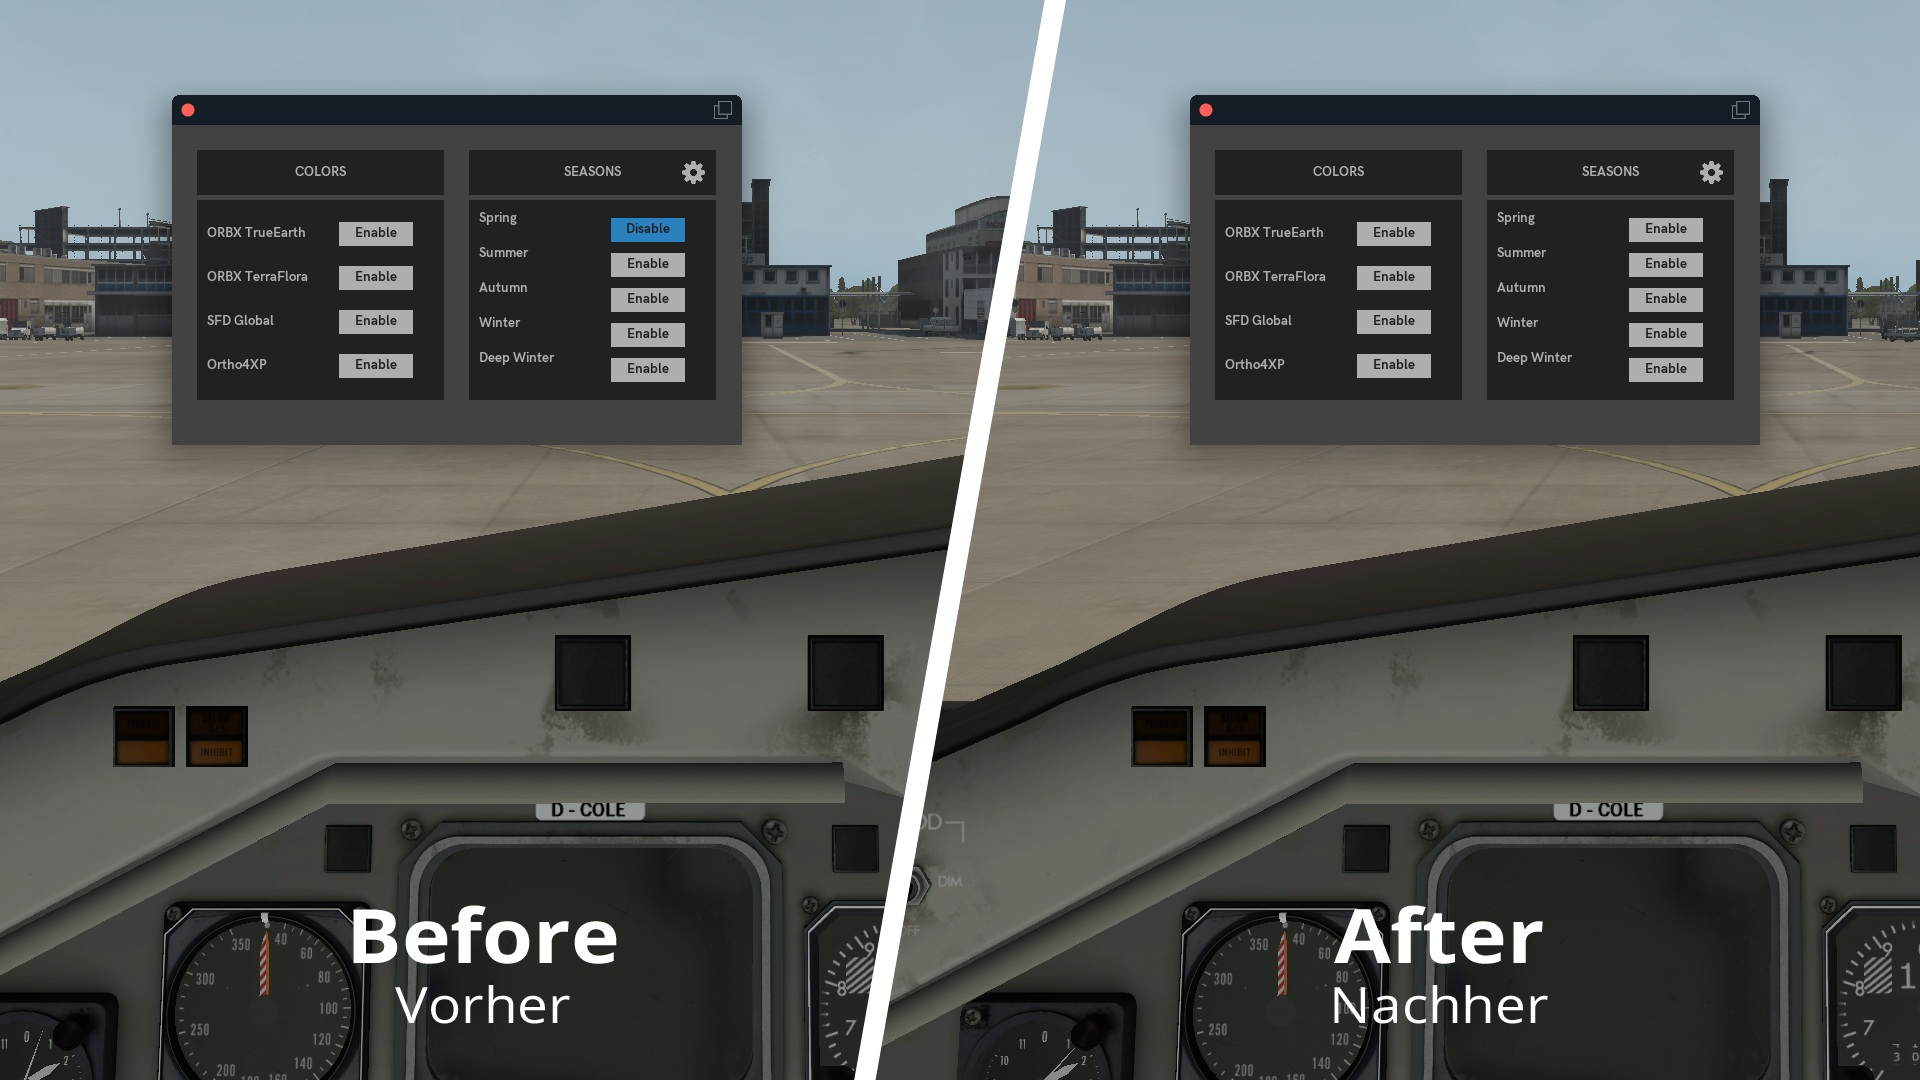 The before and after image when X-Plane crashes while loading a scenery